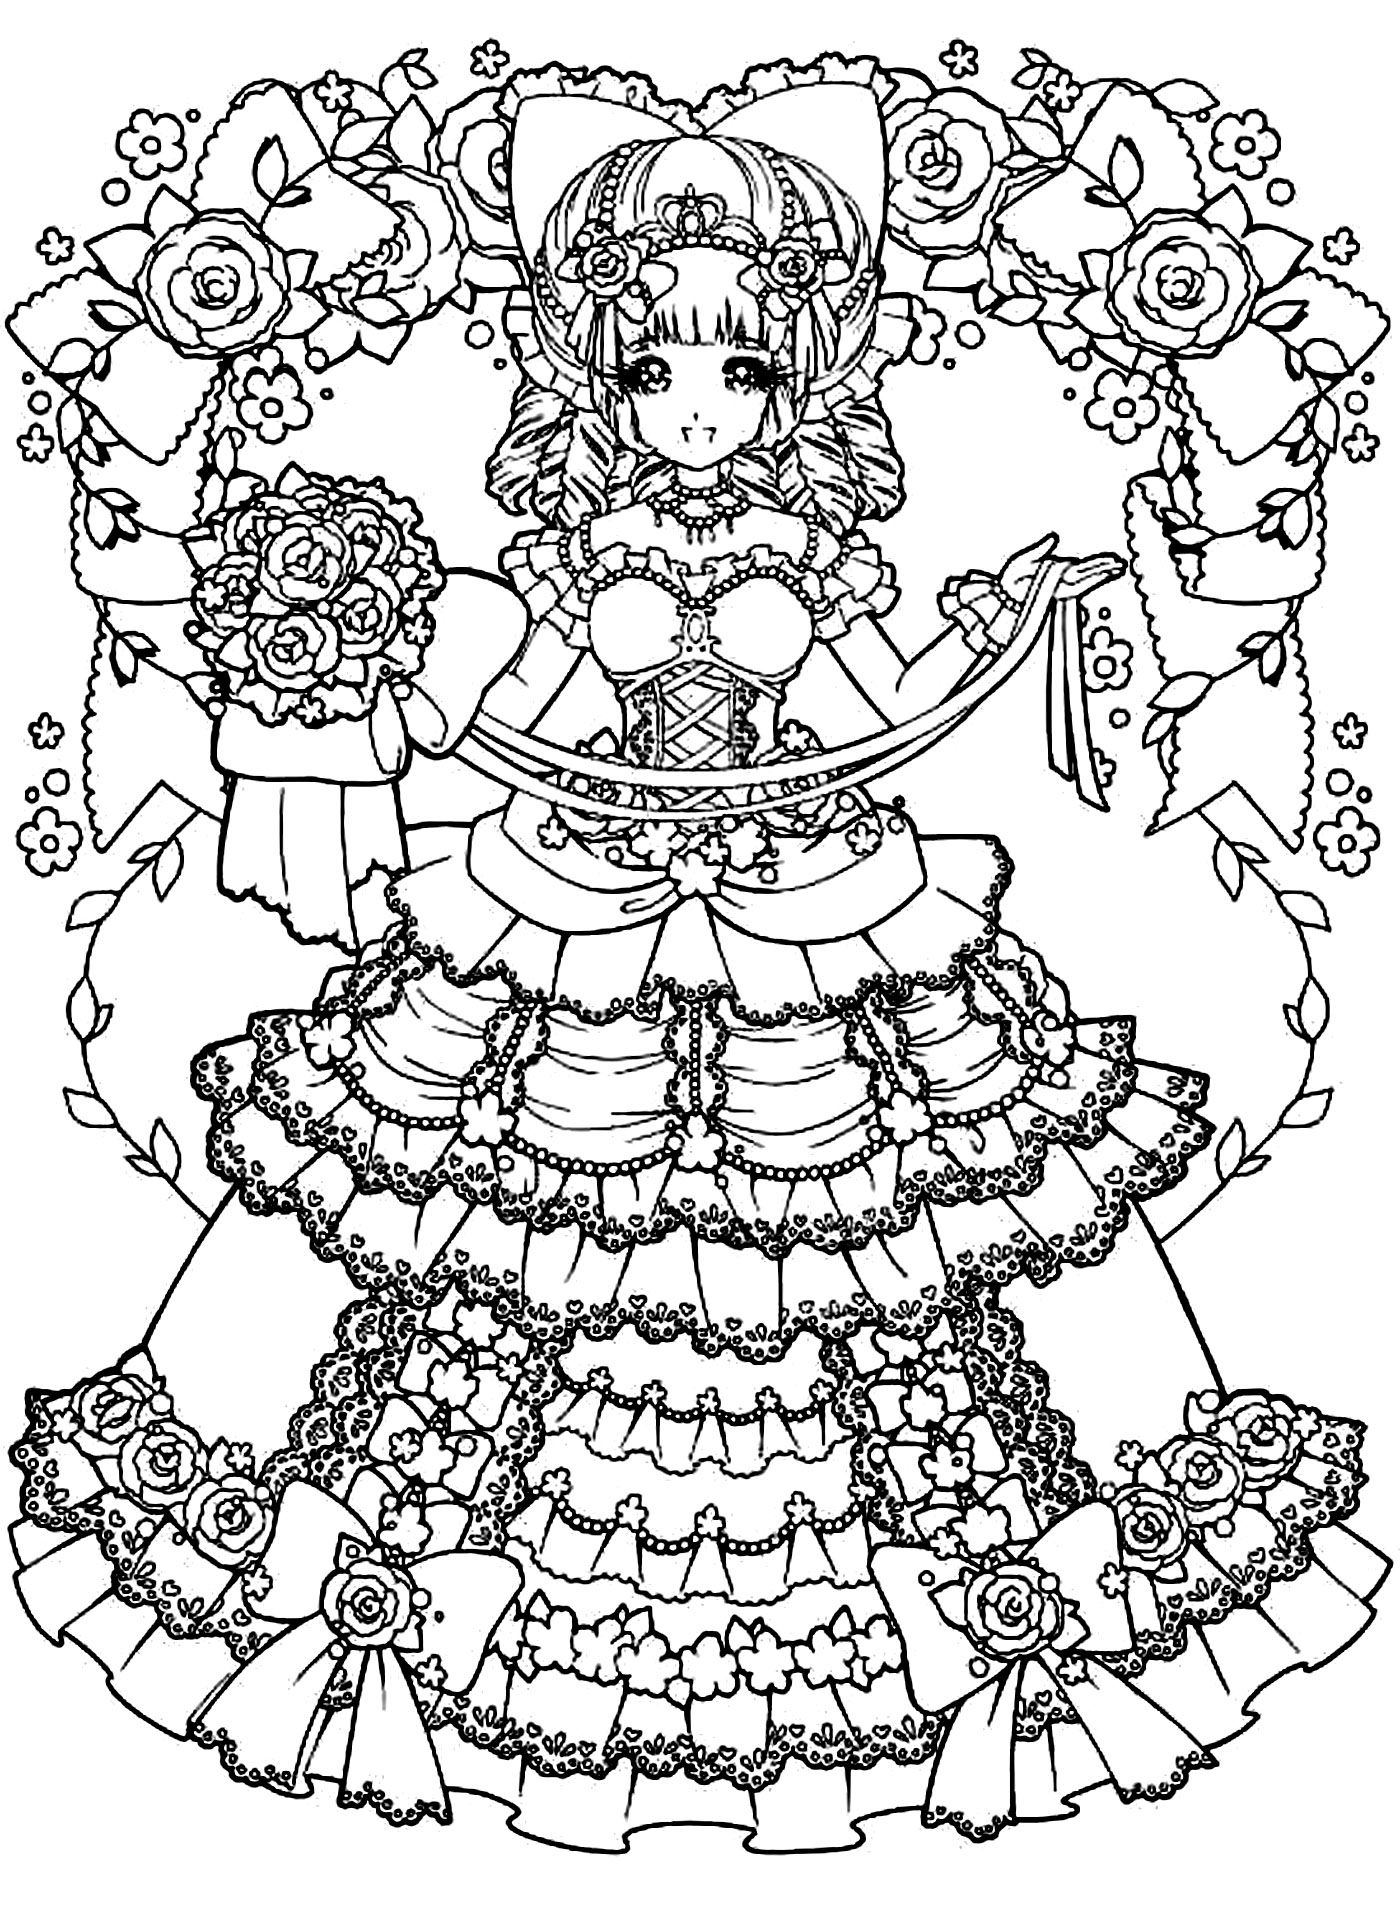 Here is our gallery with all our Manga Anime coloring pages